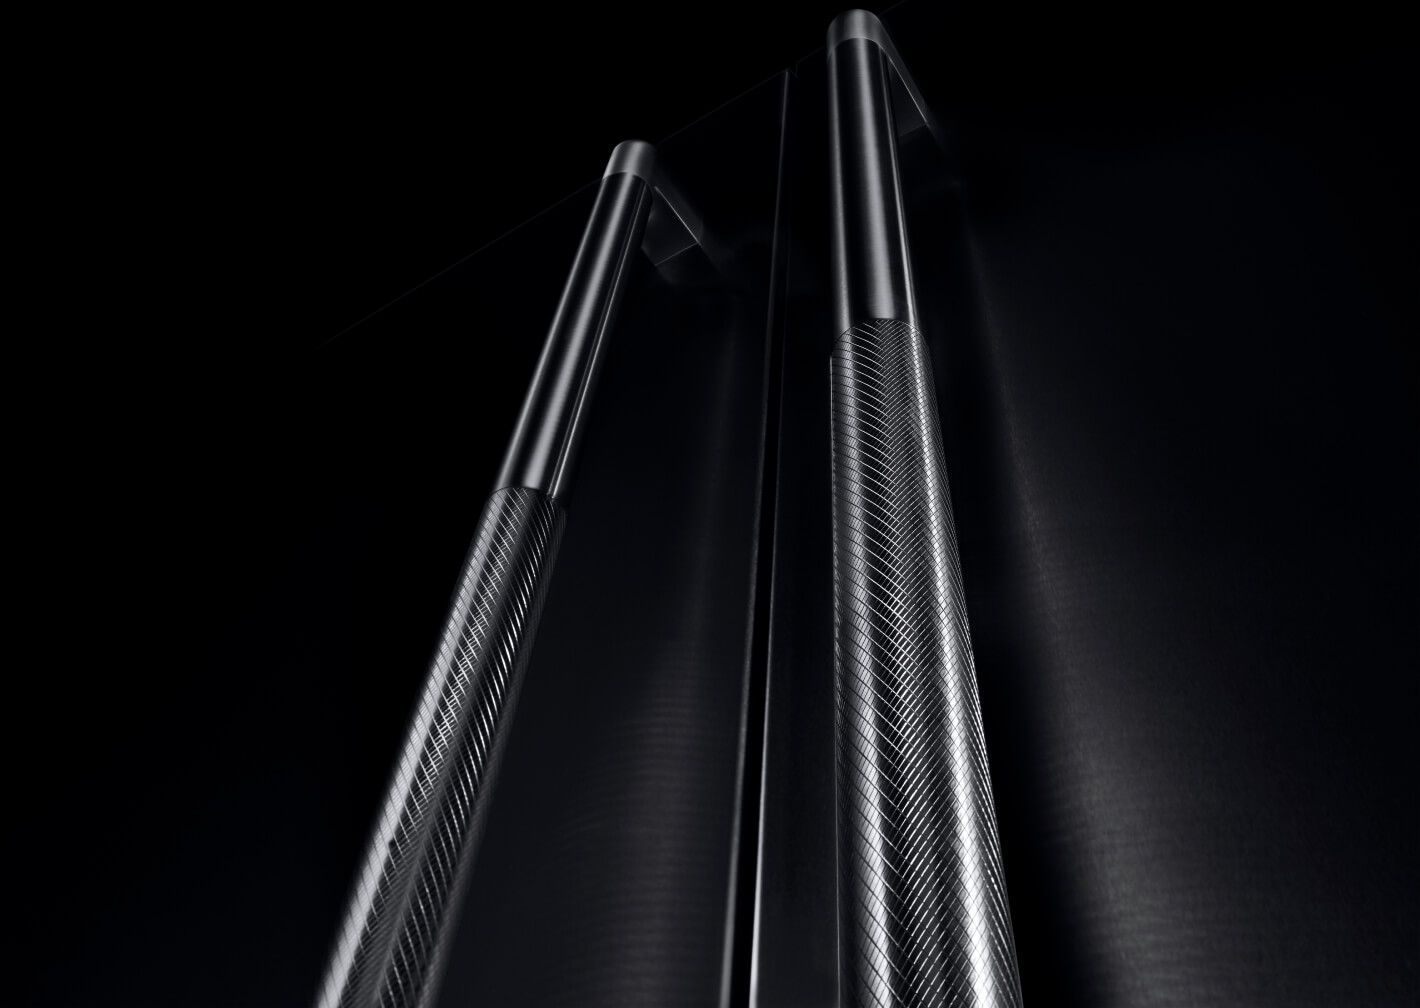 A close up of the handles on a RISE™ Design column pair.